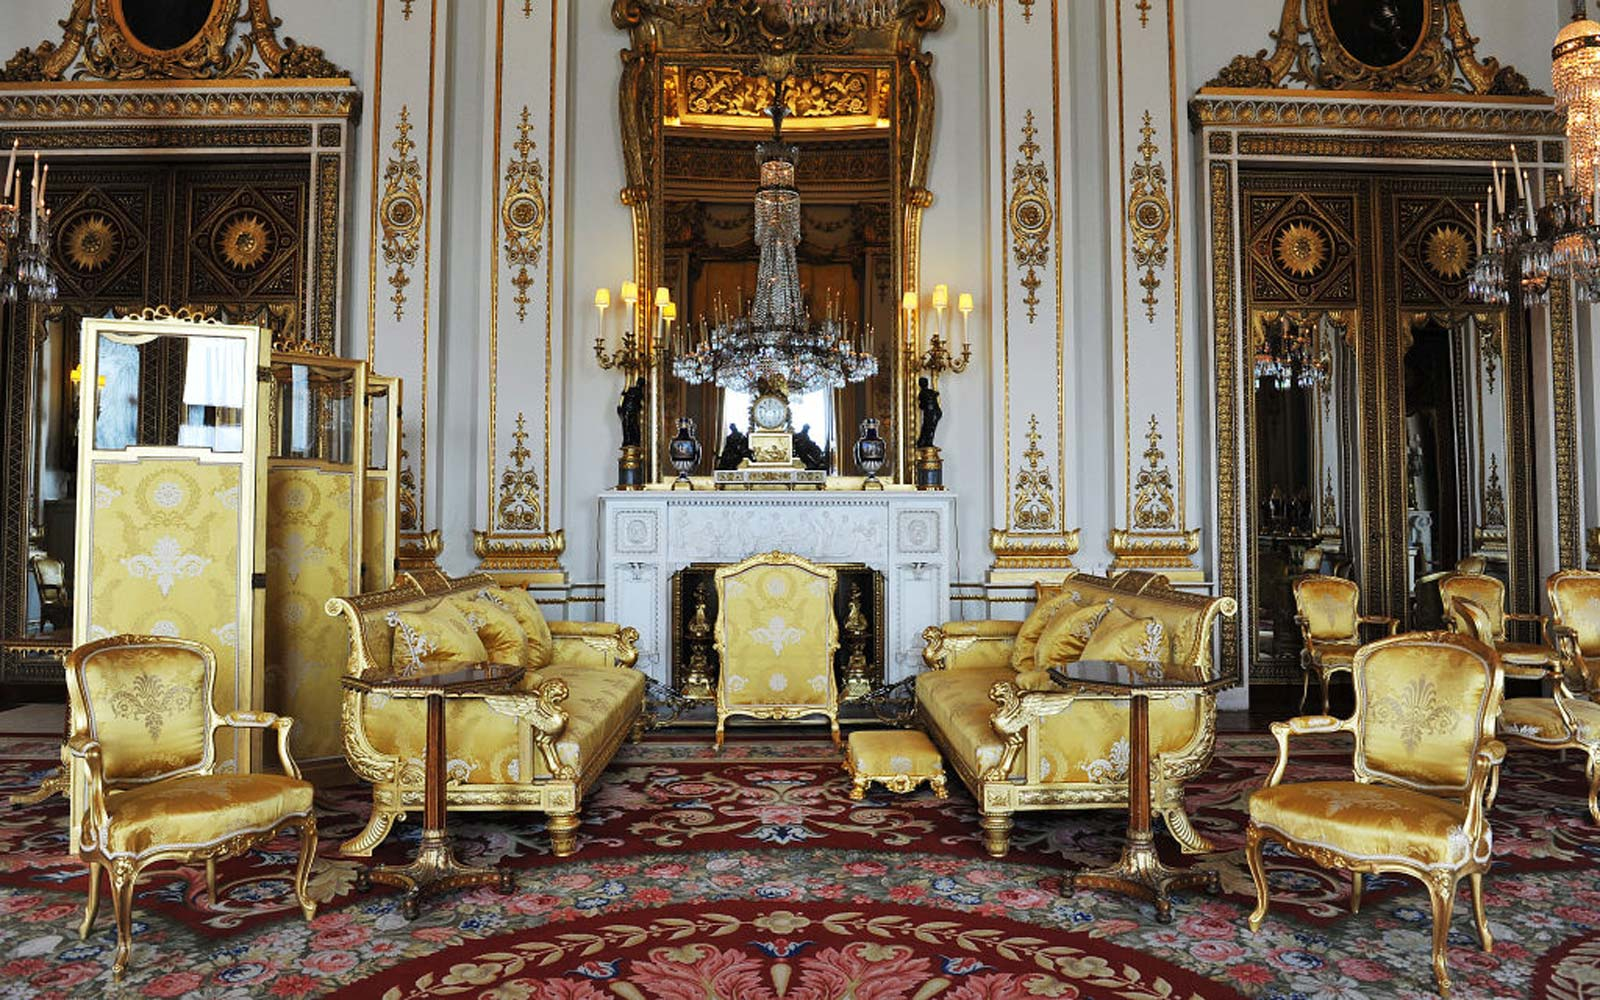 You Can Get a Rare Glimpse of Buckingham Palace's White Drawing Room and the Queen's Secret Door This Summer